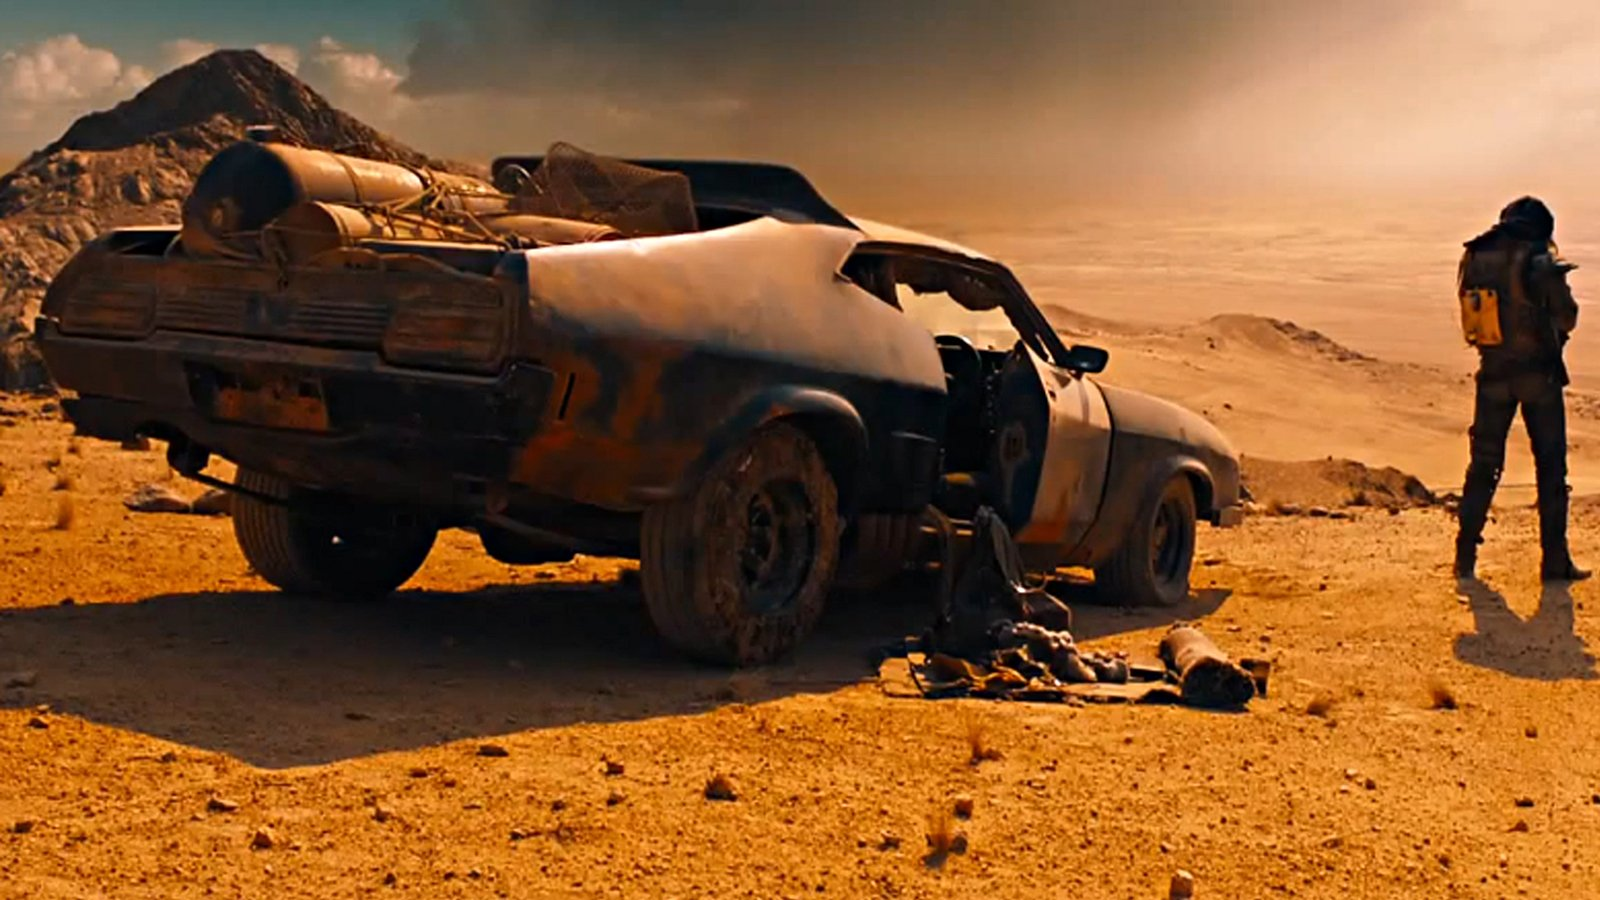 mad max fury road por dentro dos carros do futuro p s apocal ptico do filme flatout. Black Bedroom Furniture Sets. Home Design Ideas